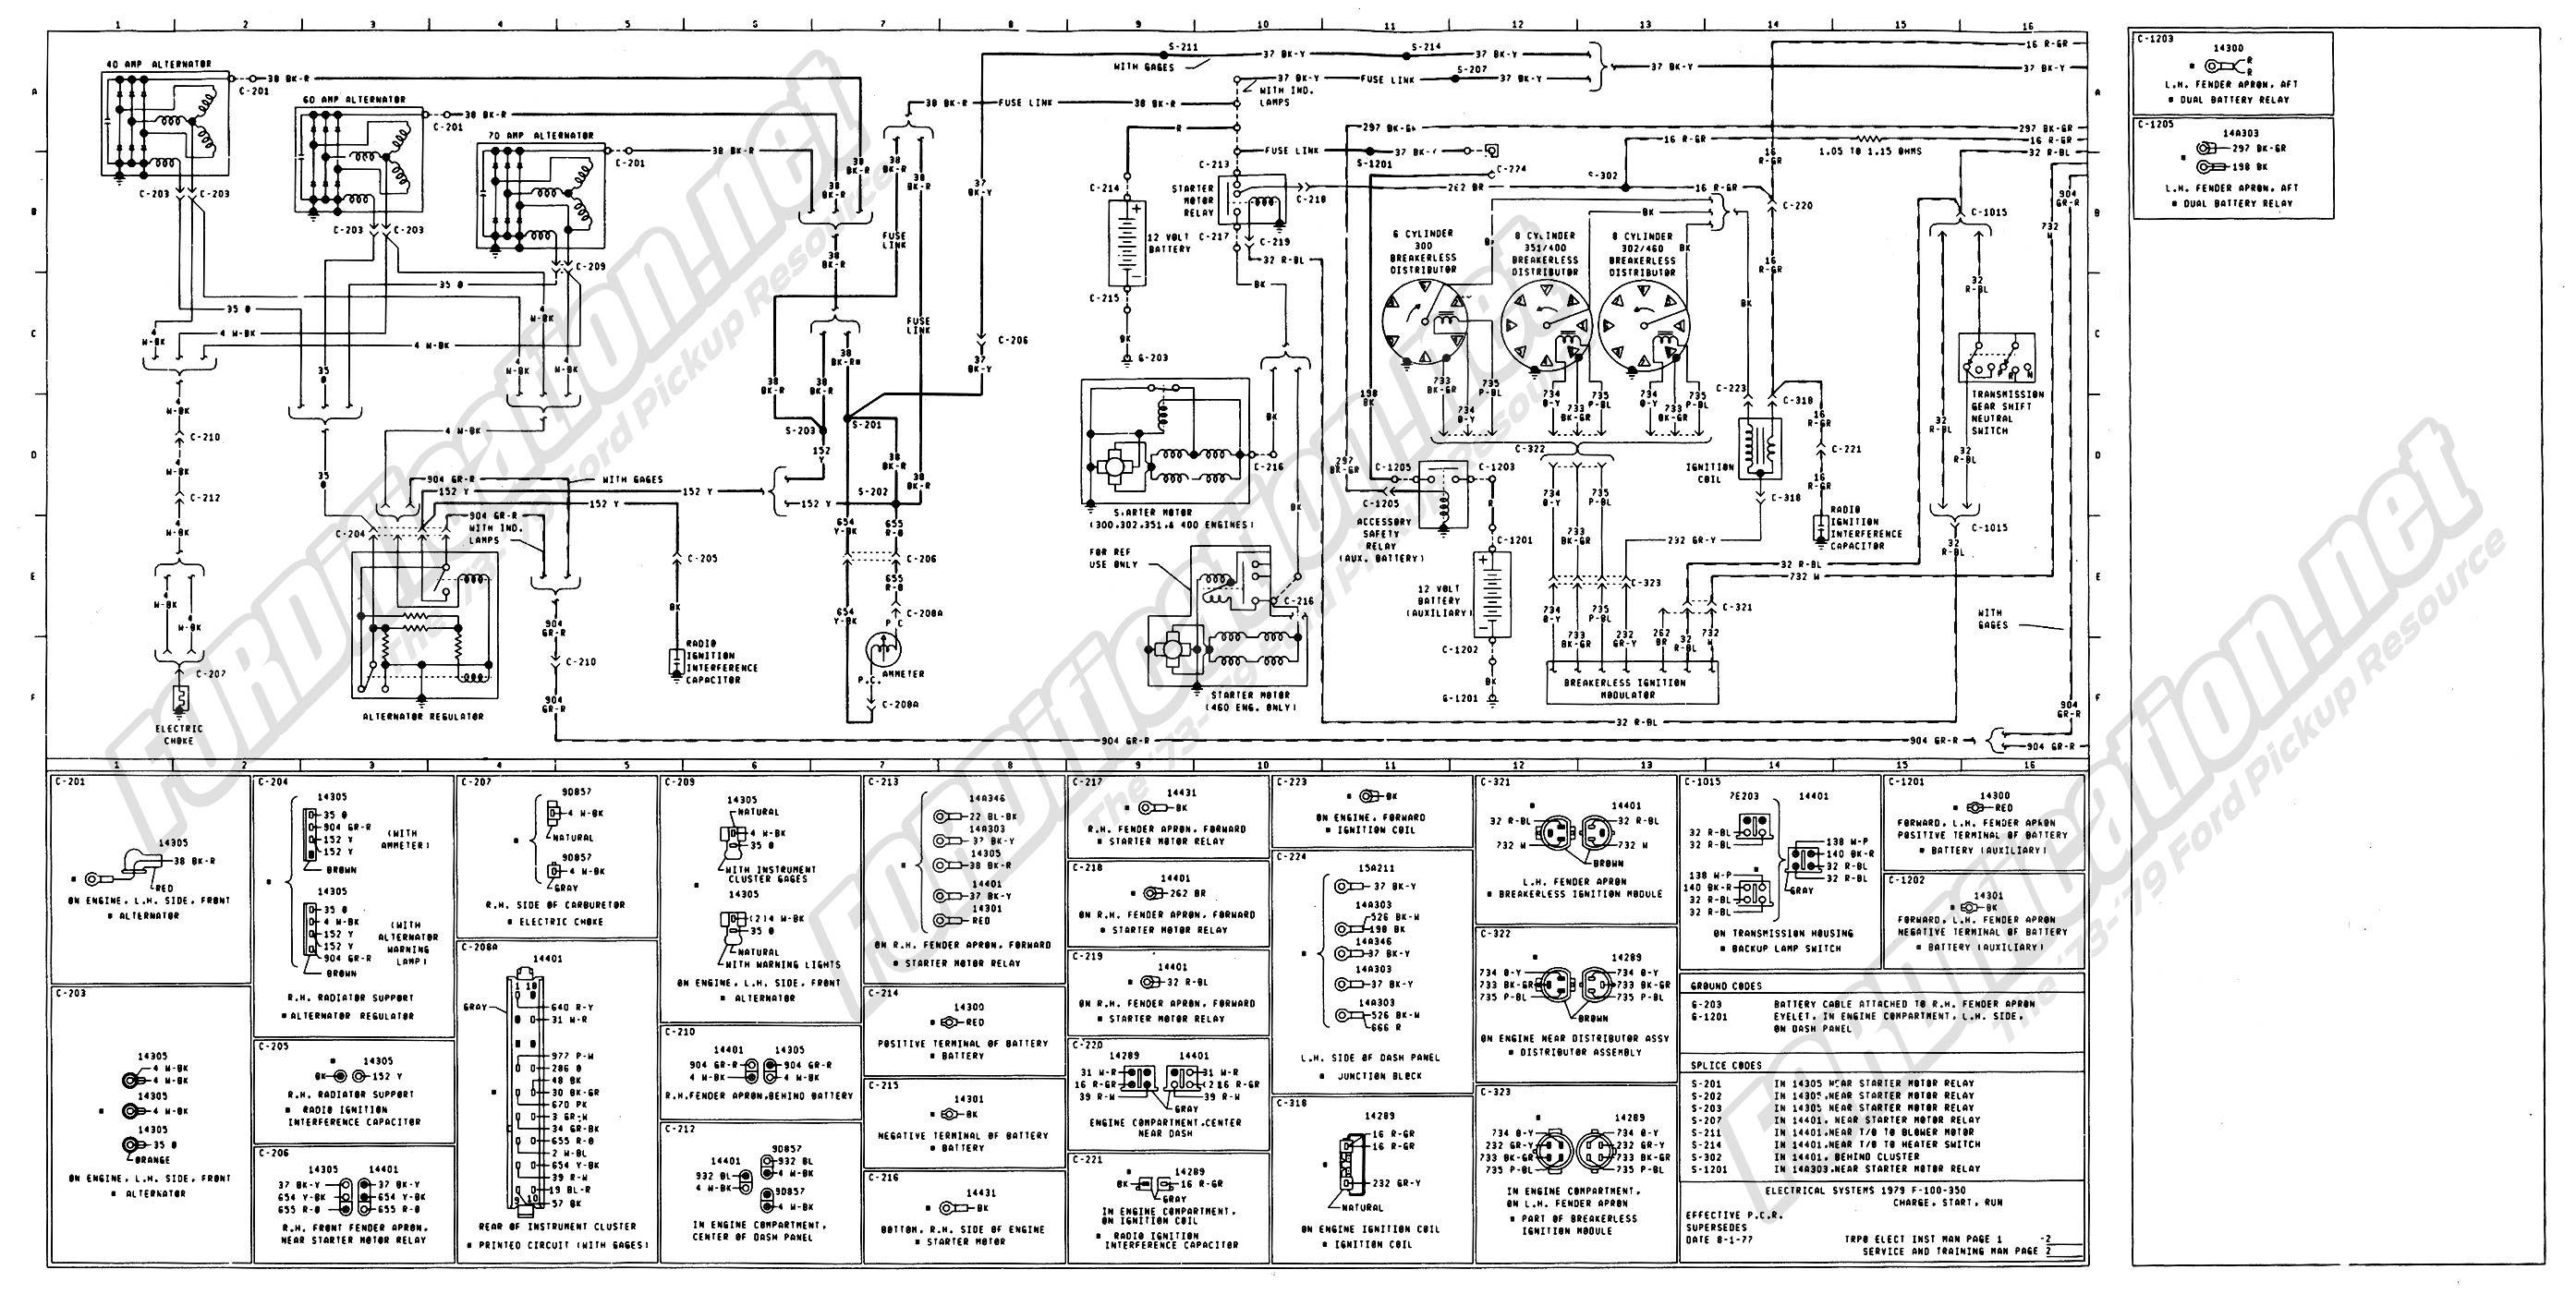 1973 1979 Ford Truck Wiring Diagrams Schematics F250 Diagram